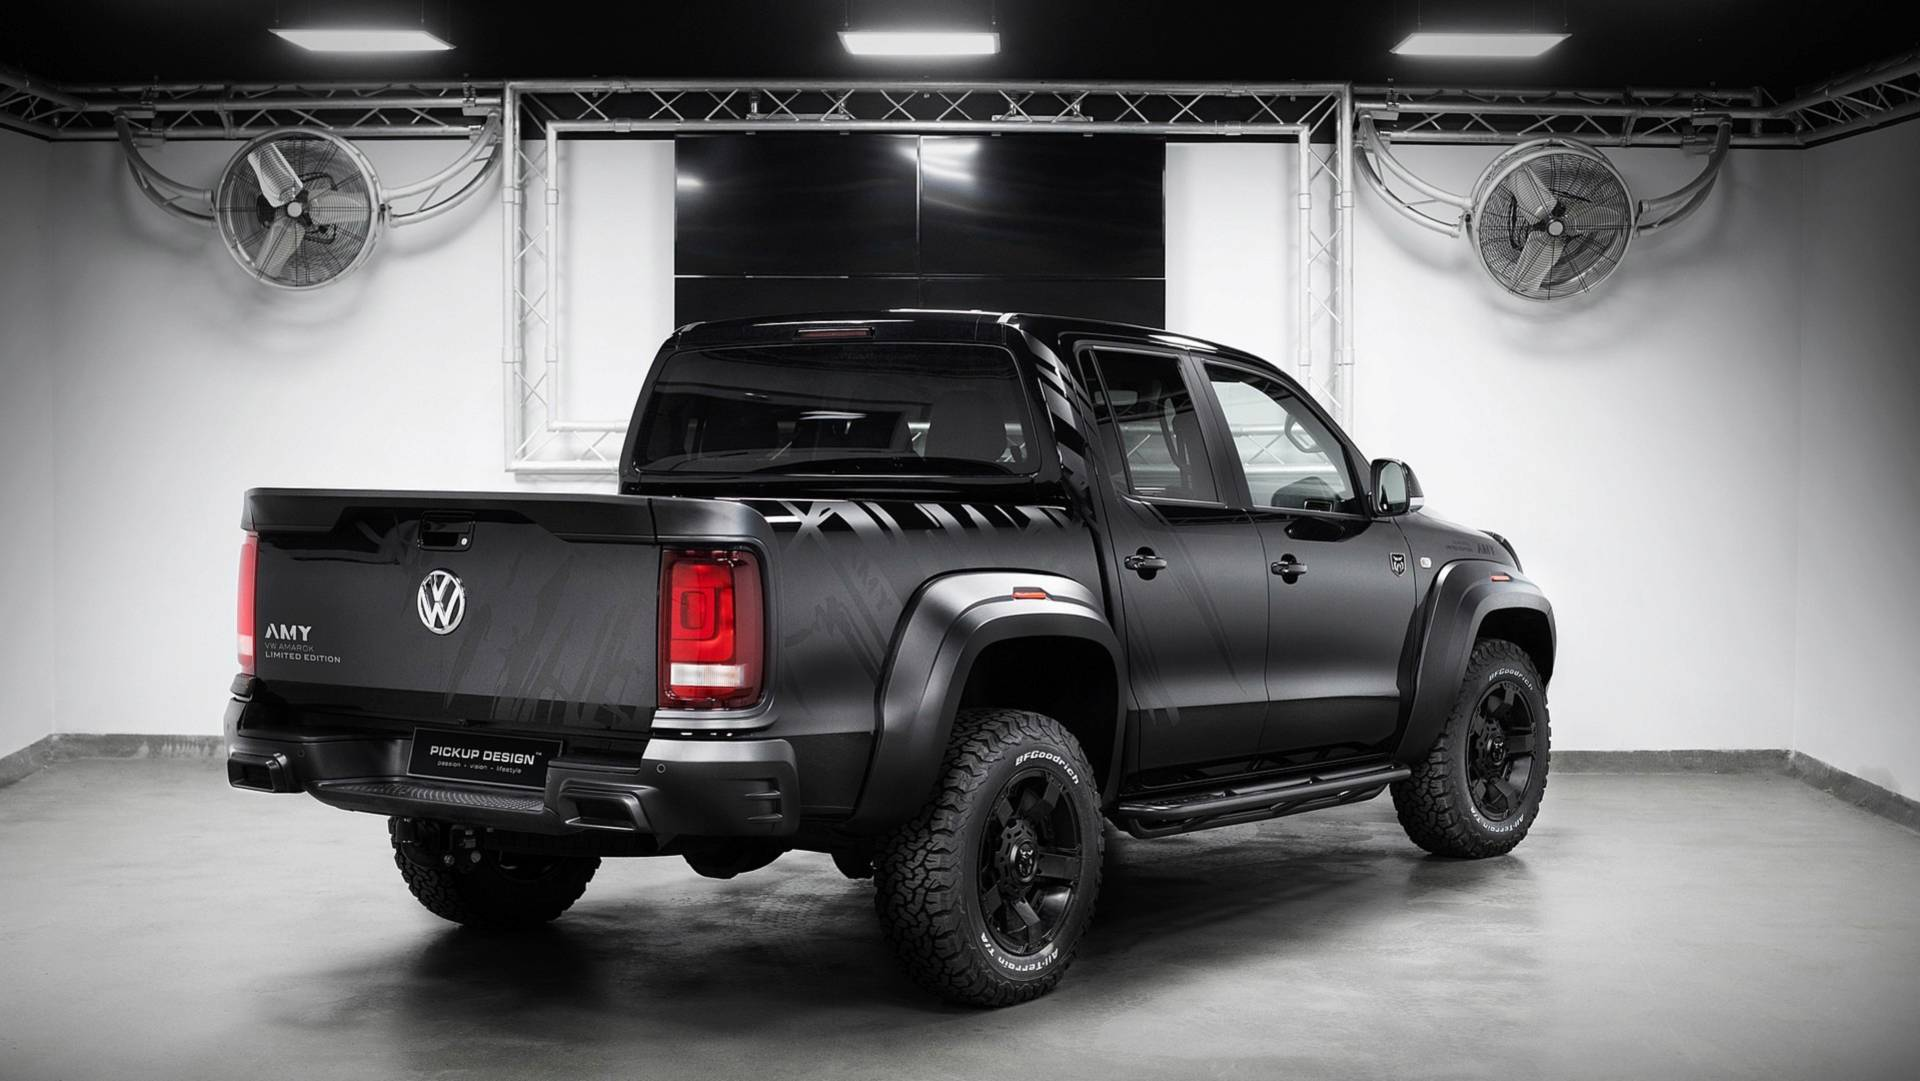 Volkswagen Amarok Amy by Carlex Design (8)